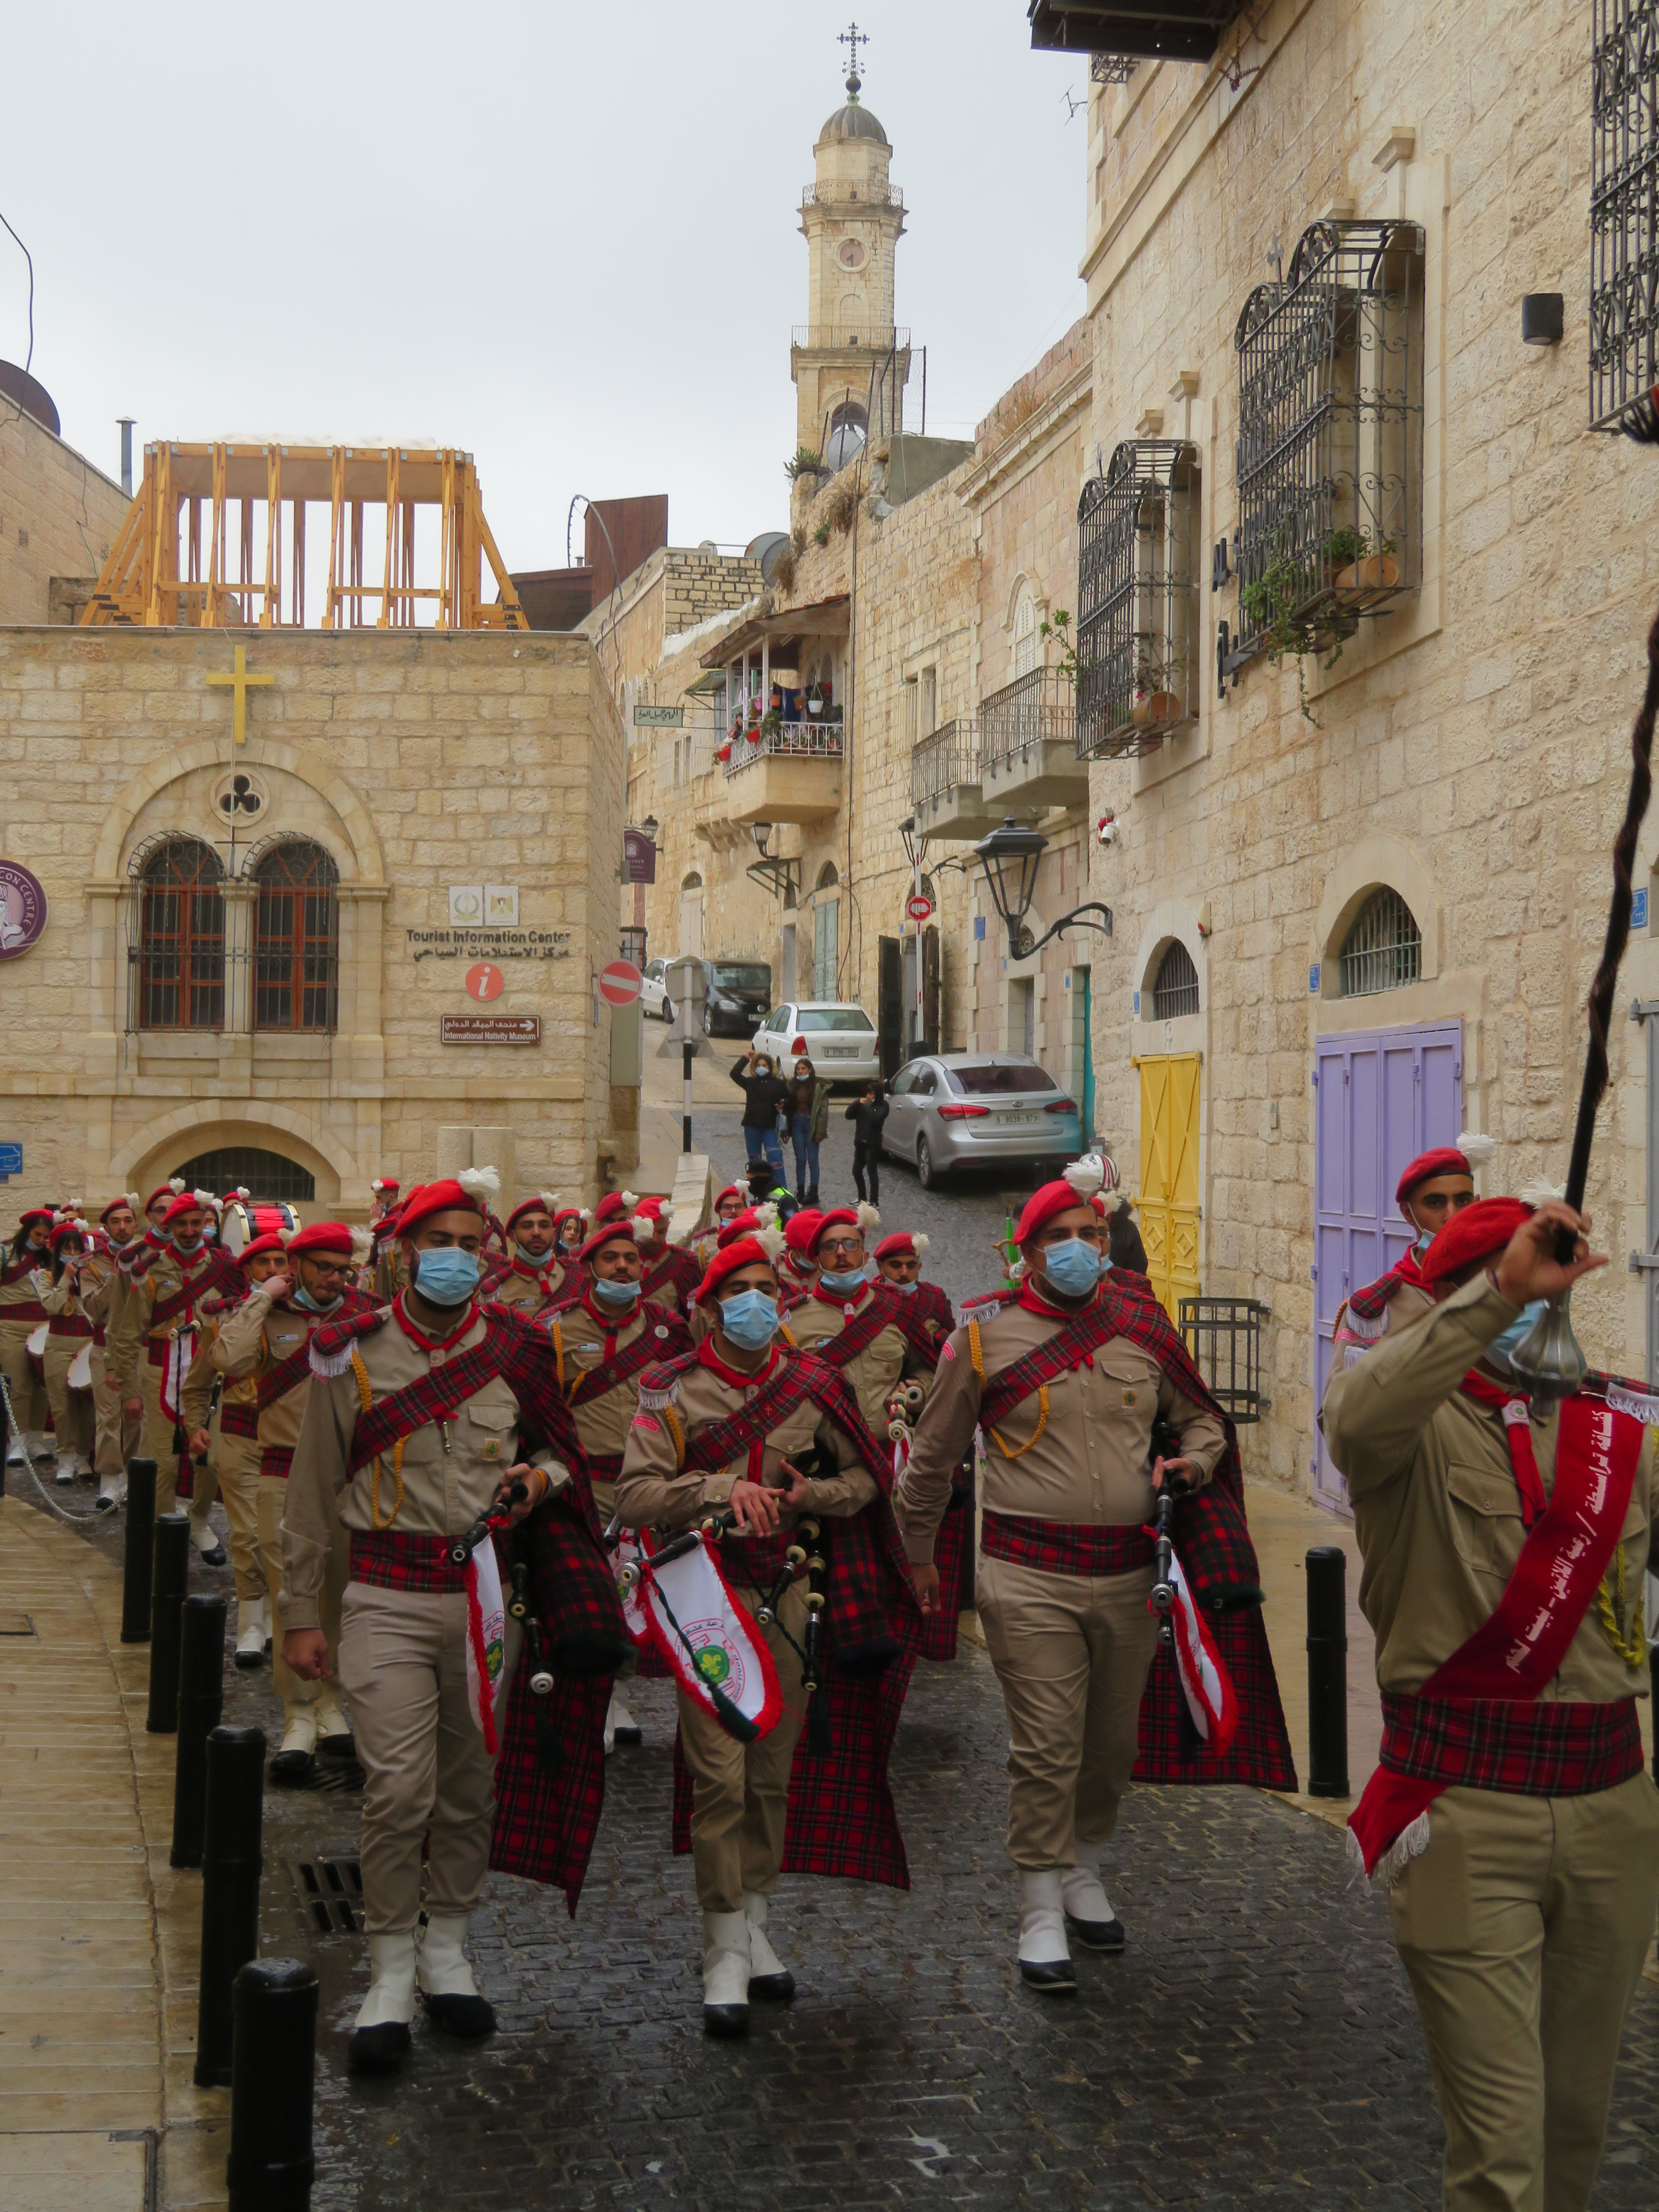 Palestinian Scout Troops make their way along Star Street on Christmas Eve morning in Bethlehem.